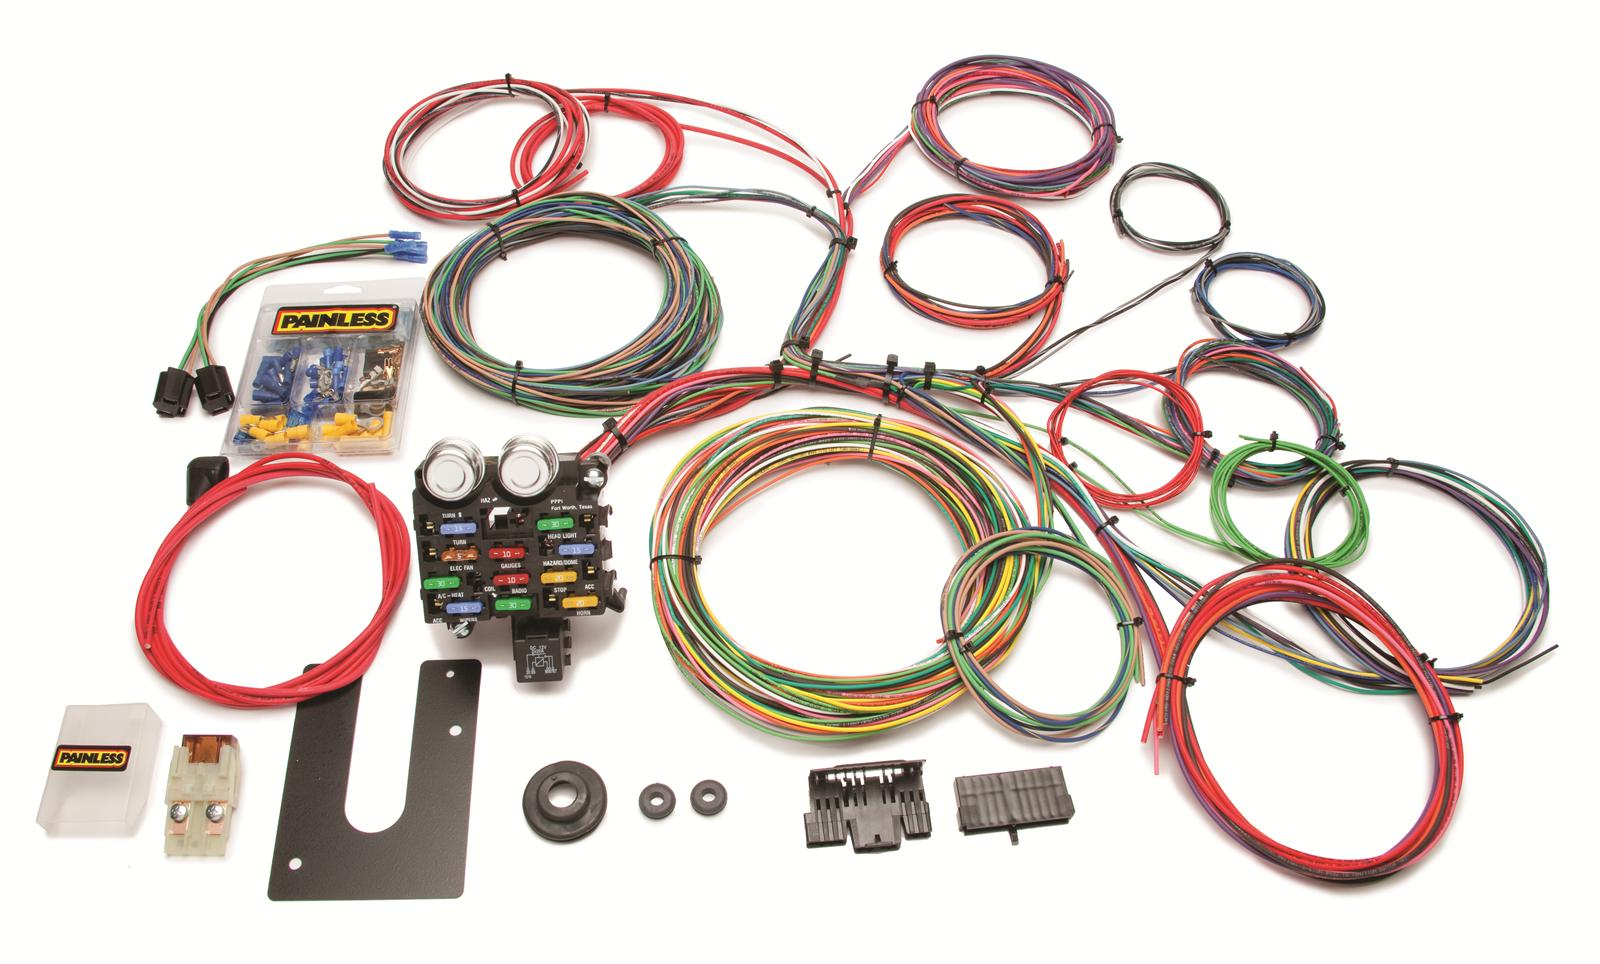 Painless Performance 21 Circuit Universal Harnesses 10102 Free Workhorse Parking Light Wire Diagrams Shipping On Orders Over 99 At Summit Racing